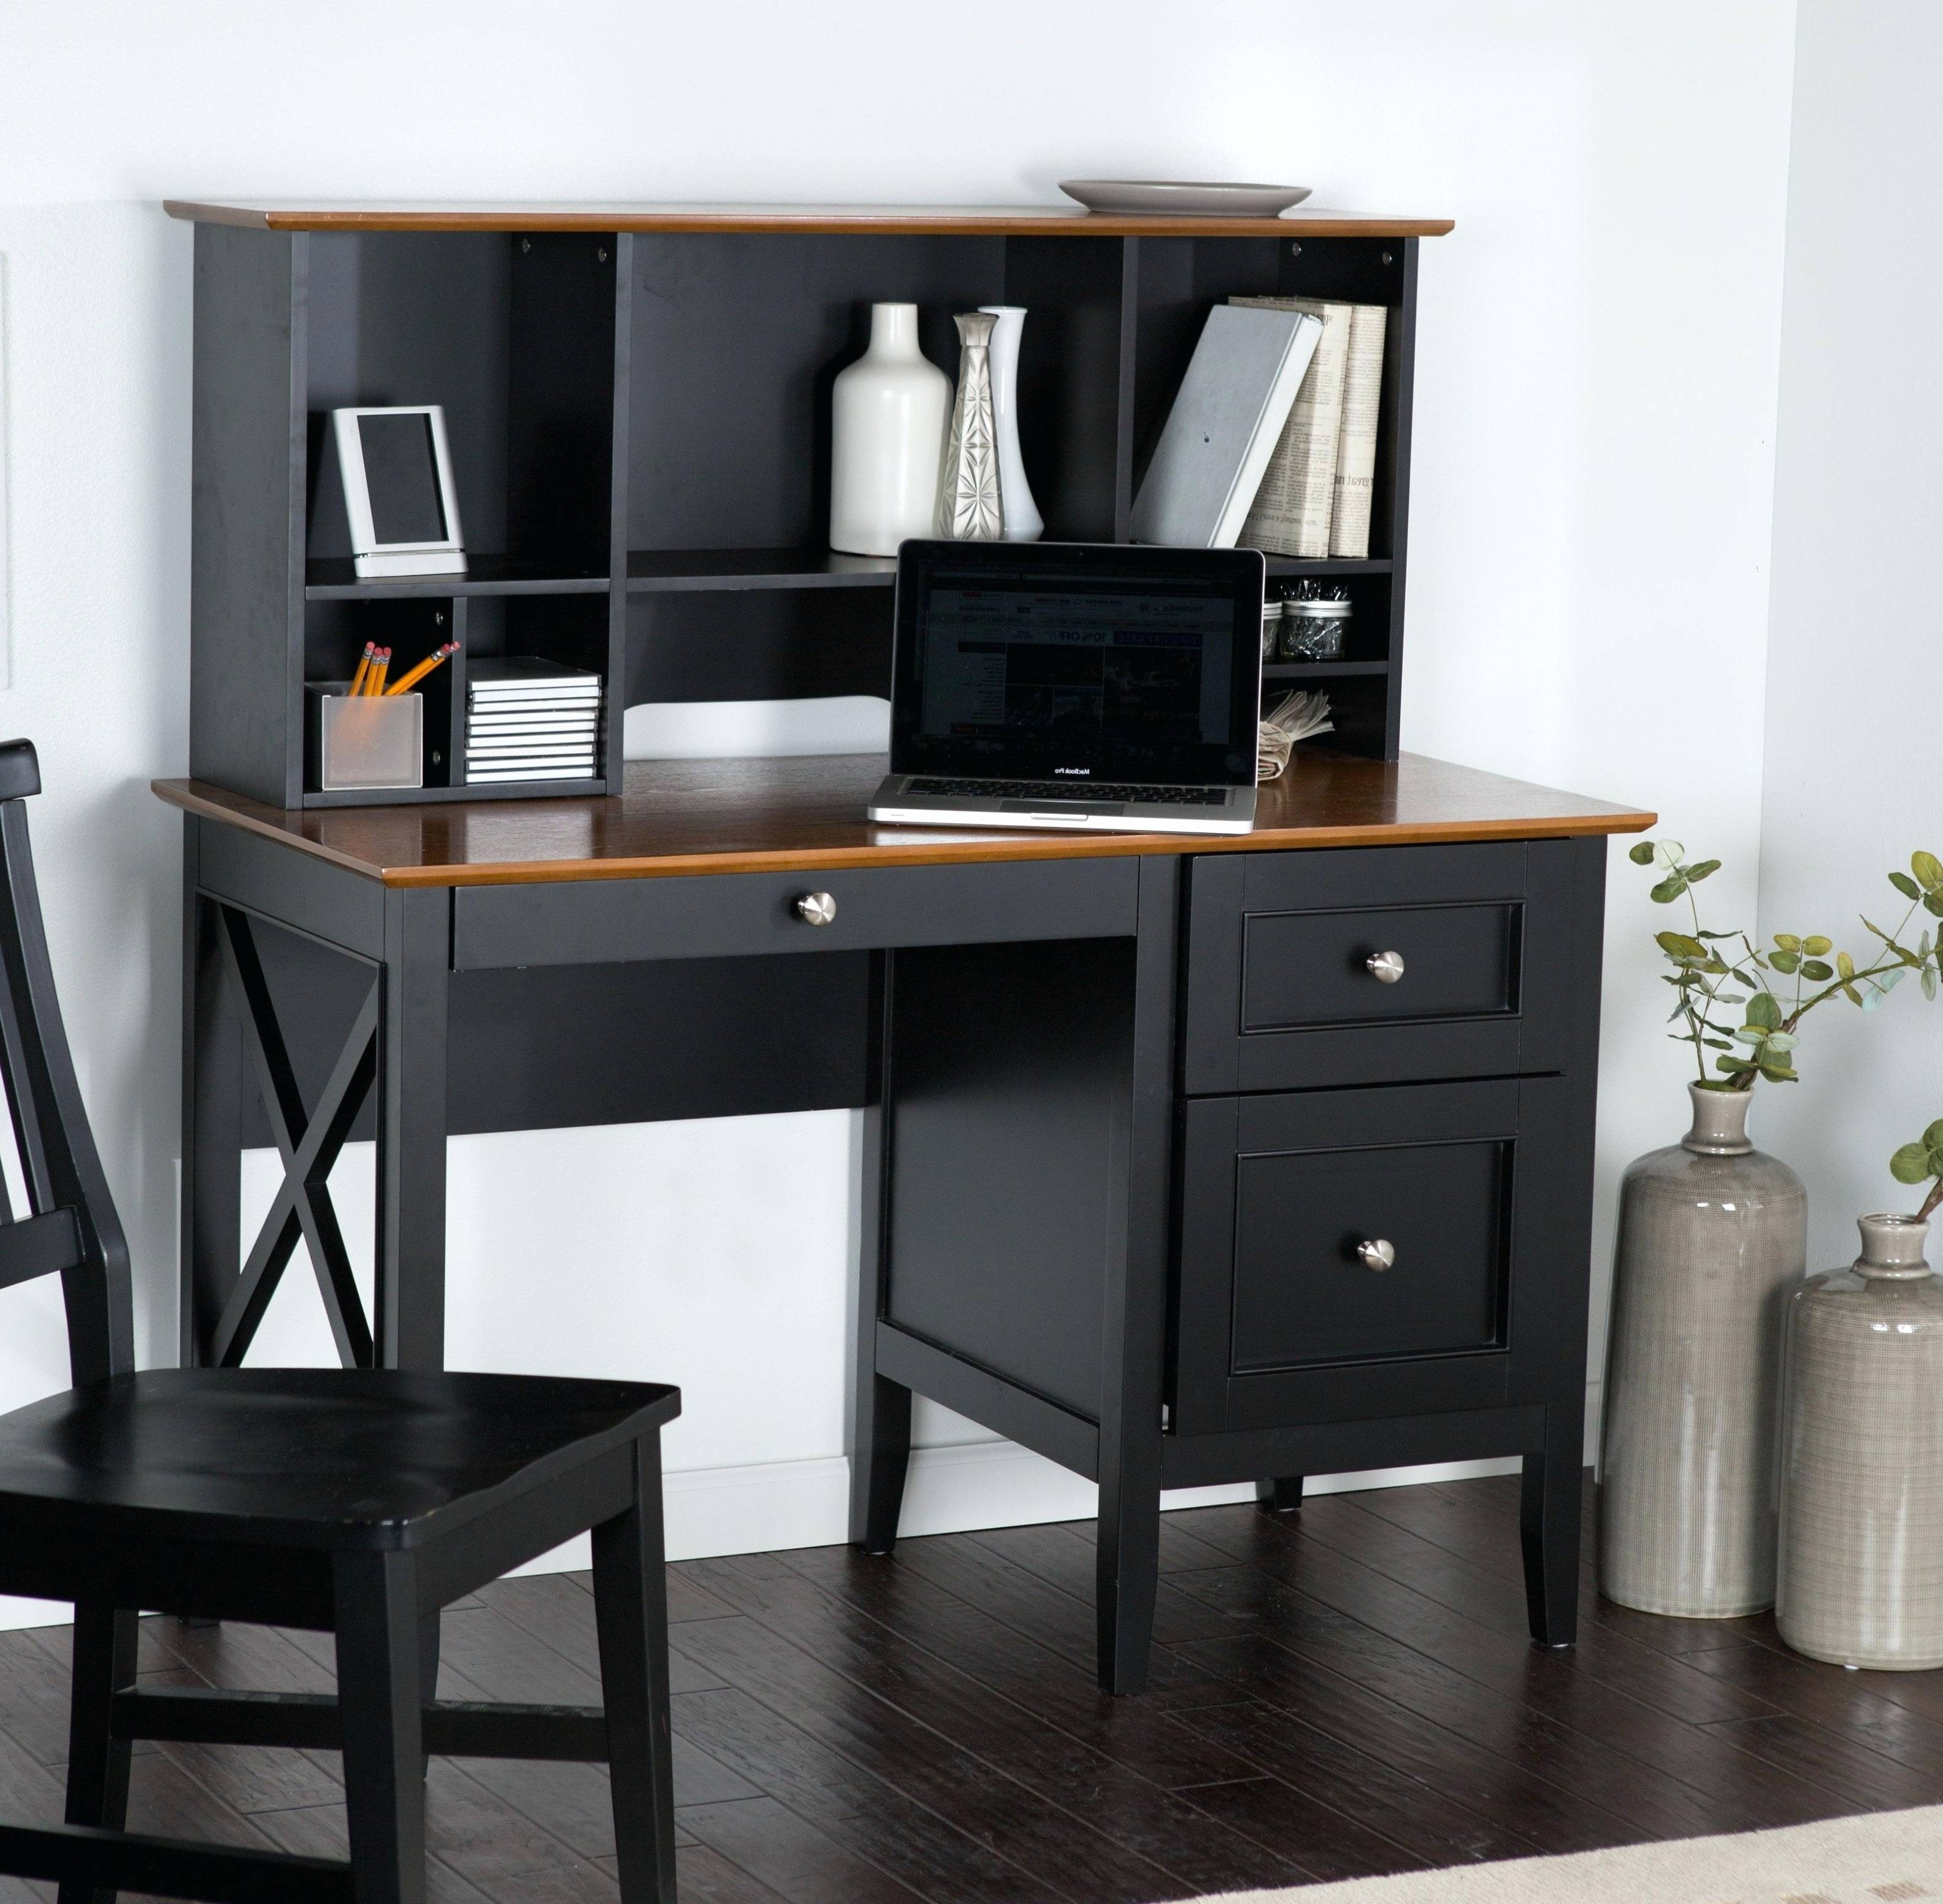 Best ideas about Office Desks For Home . Save or Pin 15 Best Ideas of Home fice Desks Uk Now.